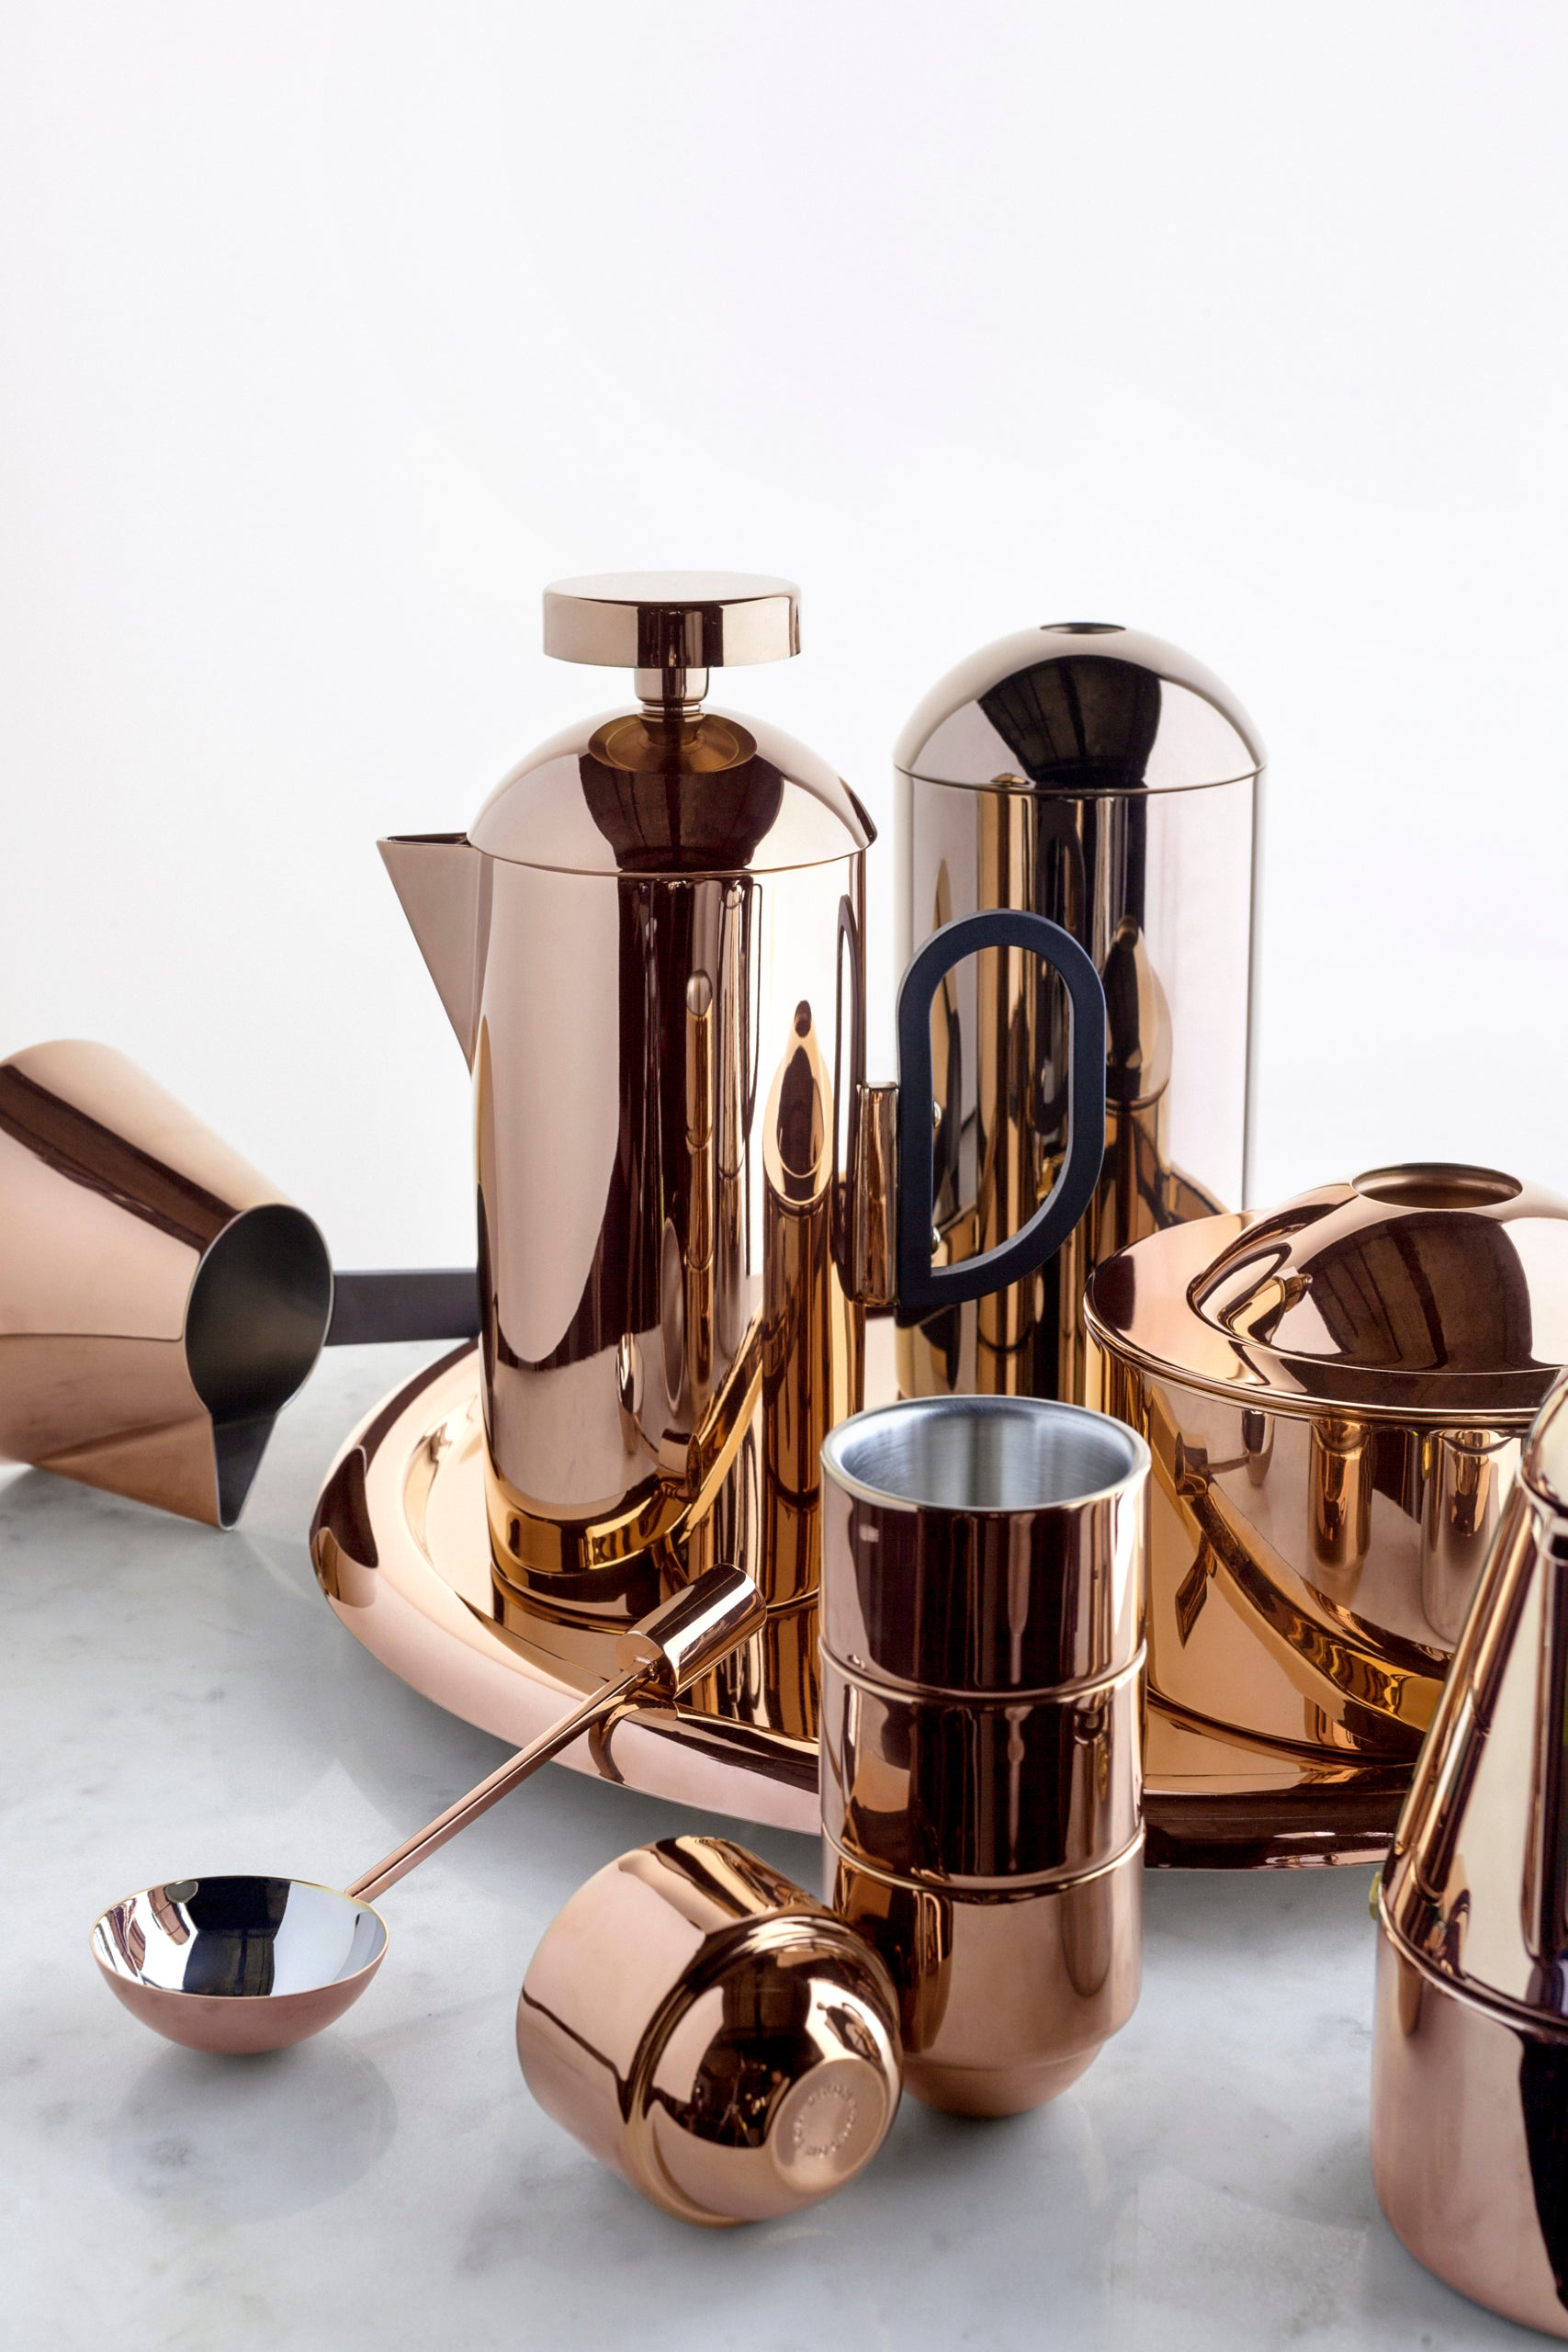 Tim Dixon Brew copper collection